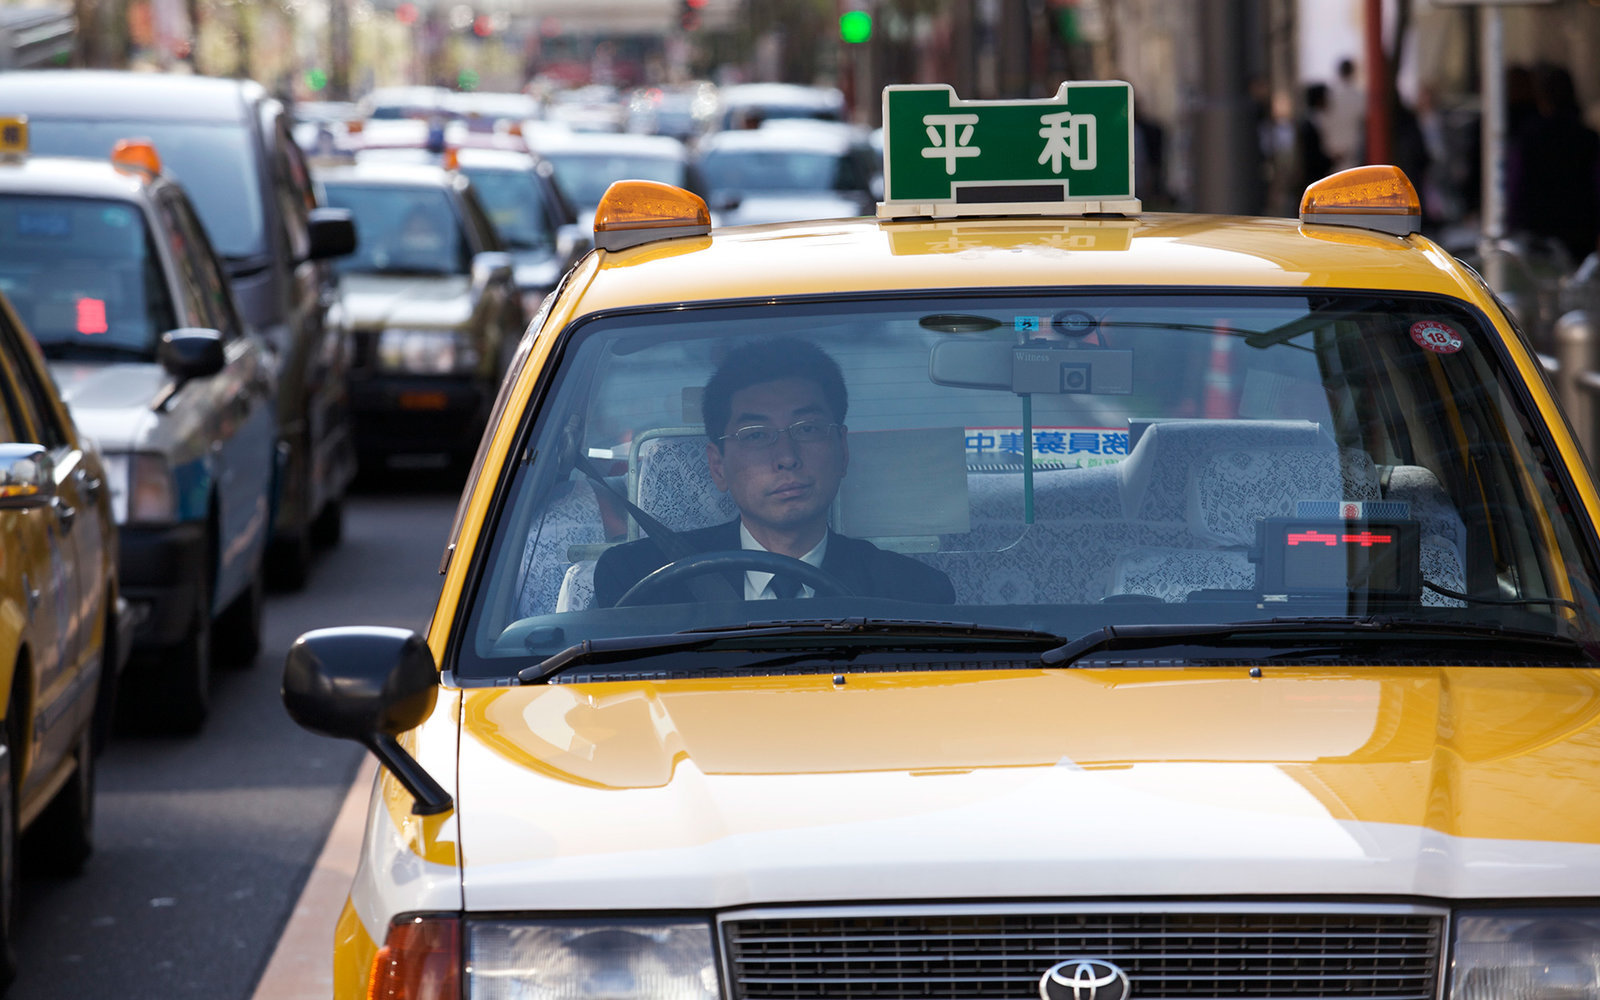 Taxi Drivers in Japan Claim They've Had Ghost Passengers ...